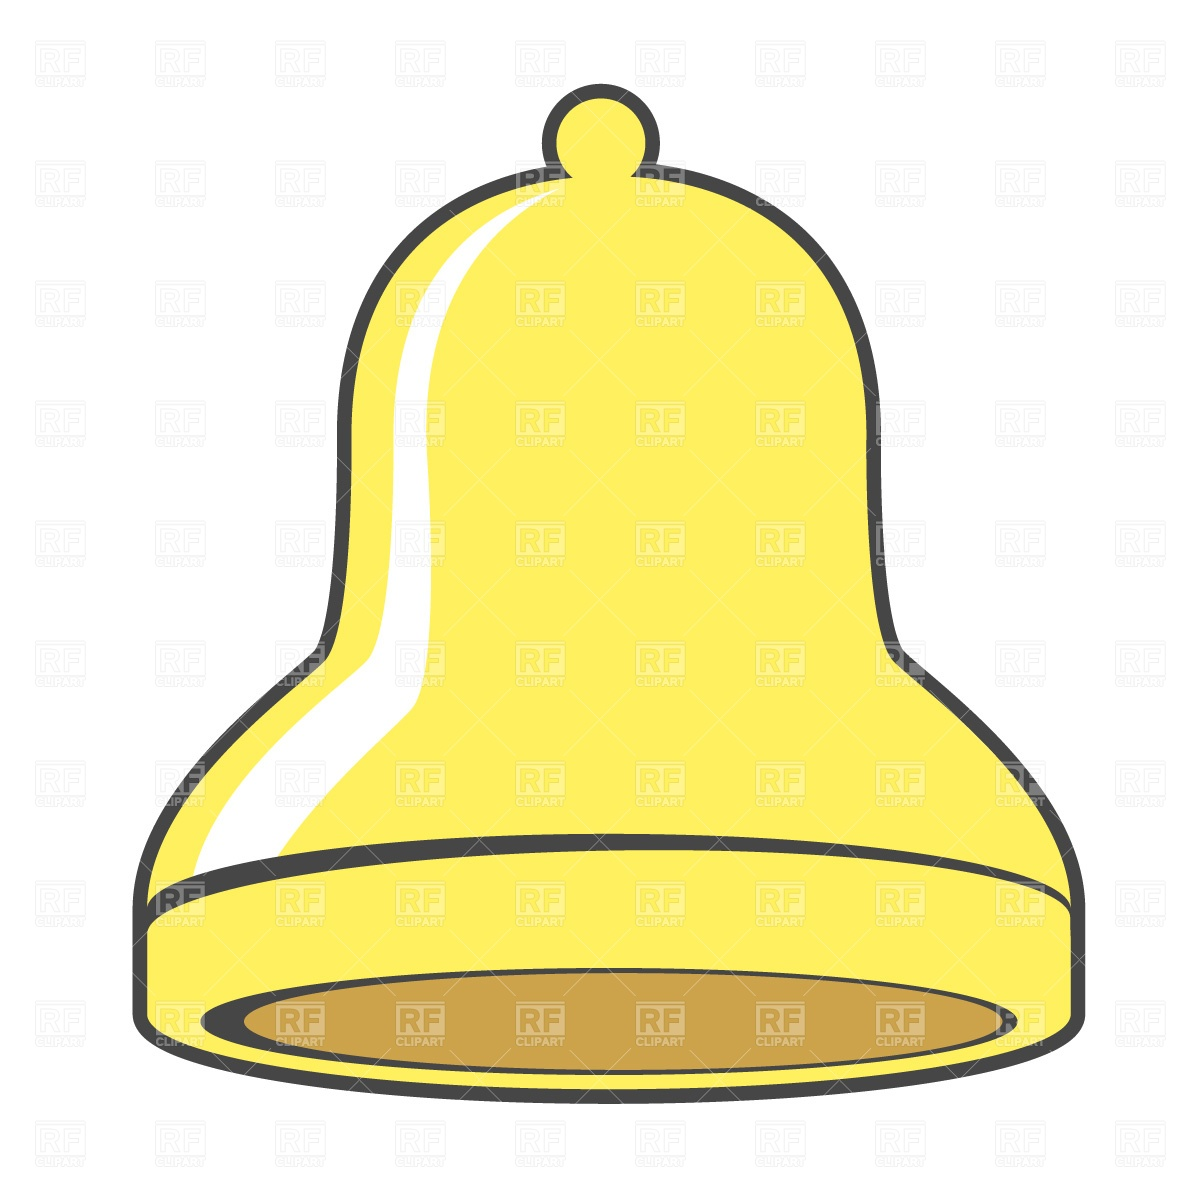 1200x1200 Golden Christmas Bell Free Vector Clip Art Image